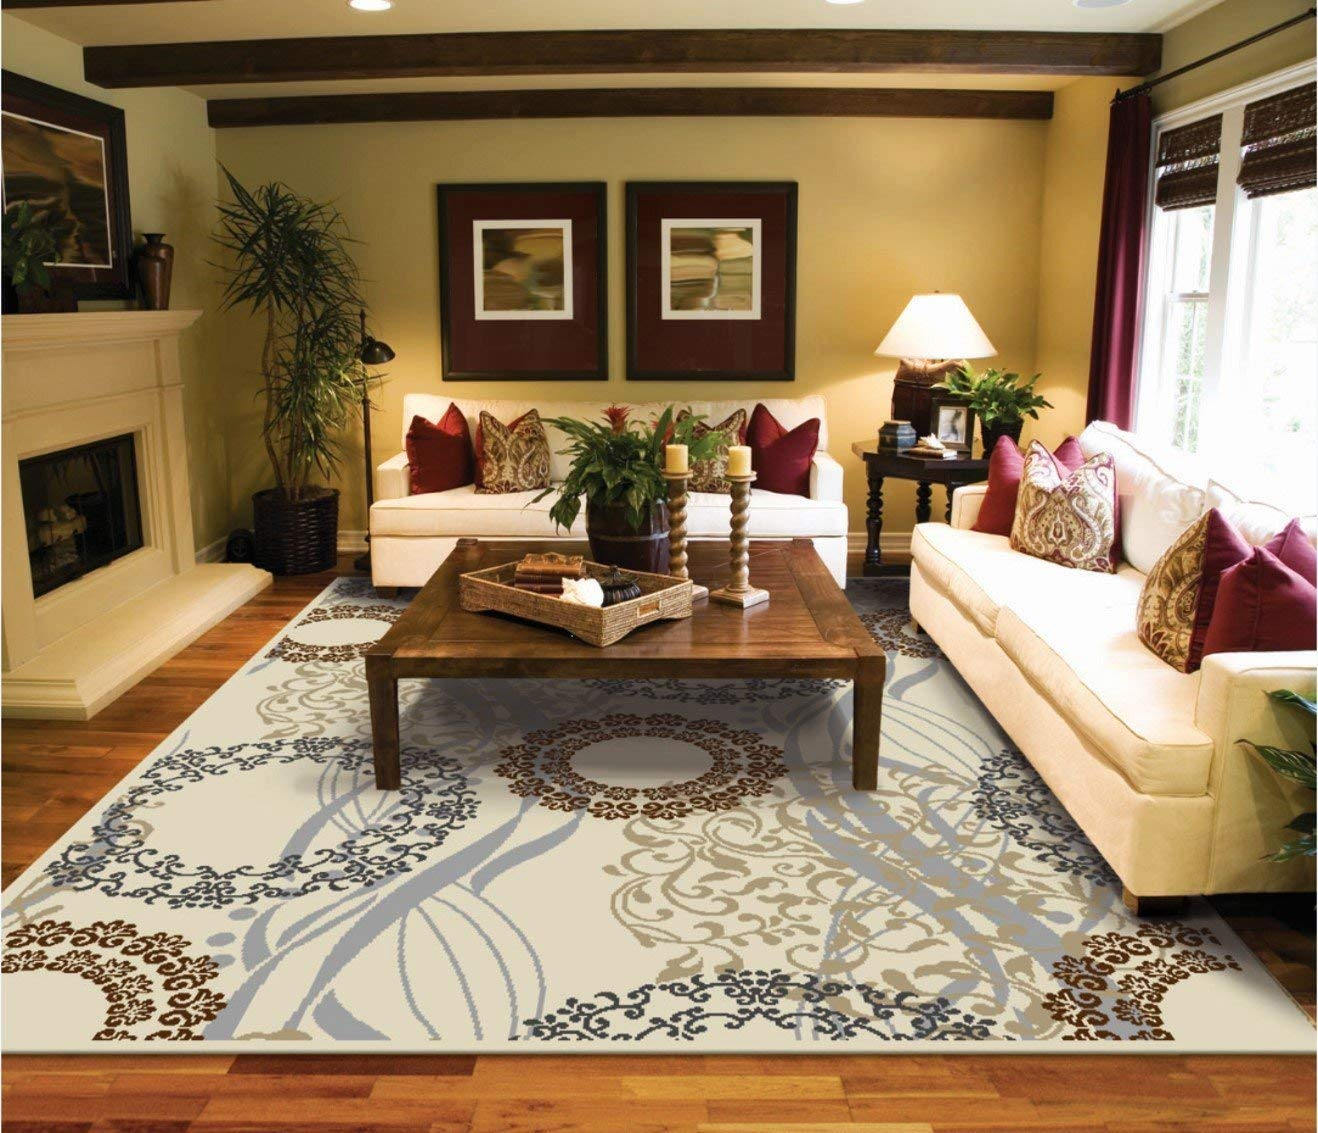 large living room rugs amazon.com: large area rugs 8x11 dining room rugs for hardwood floors cream WRIOGDI